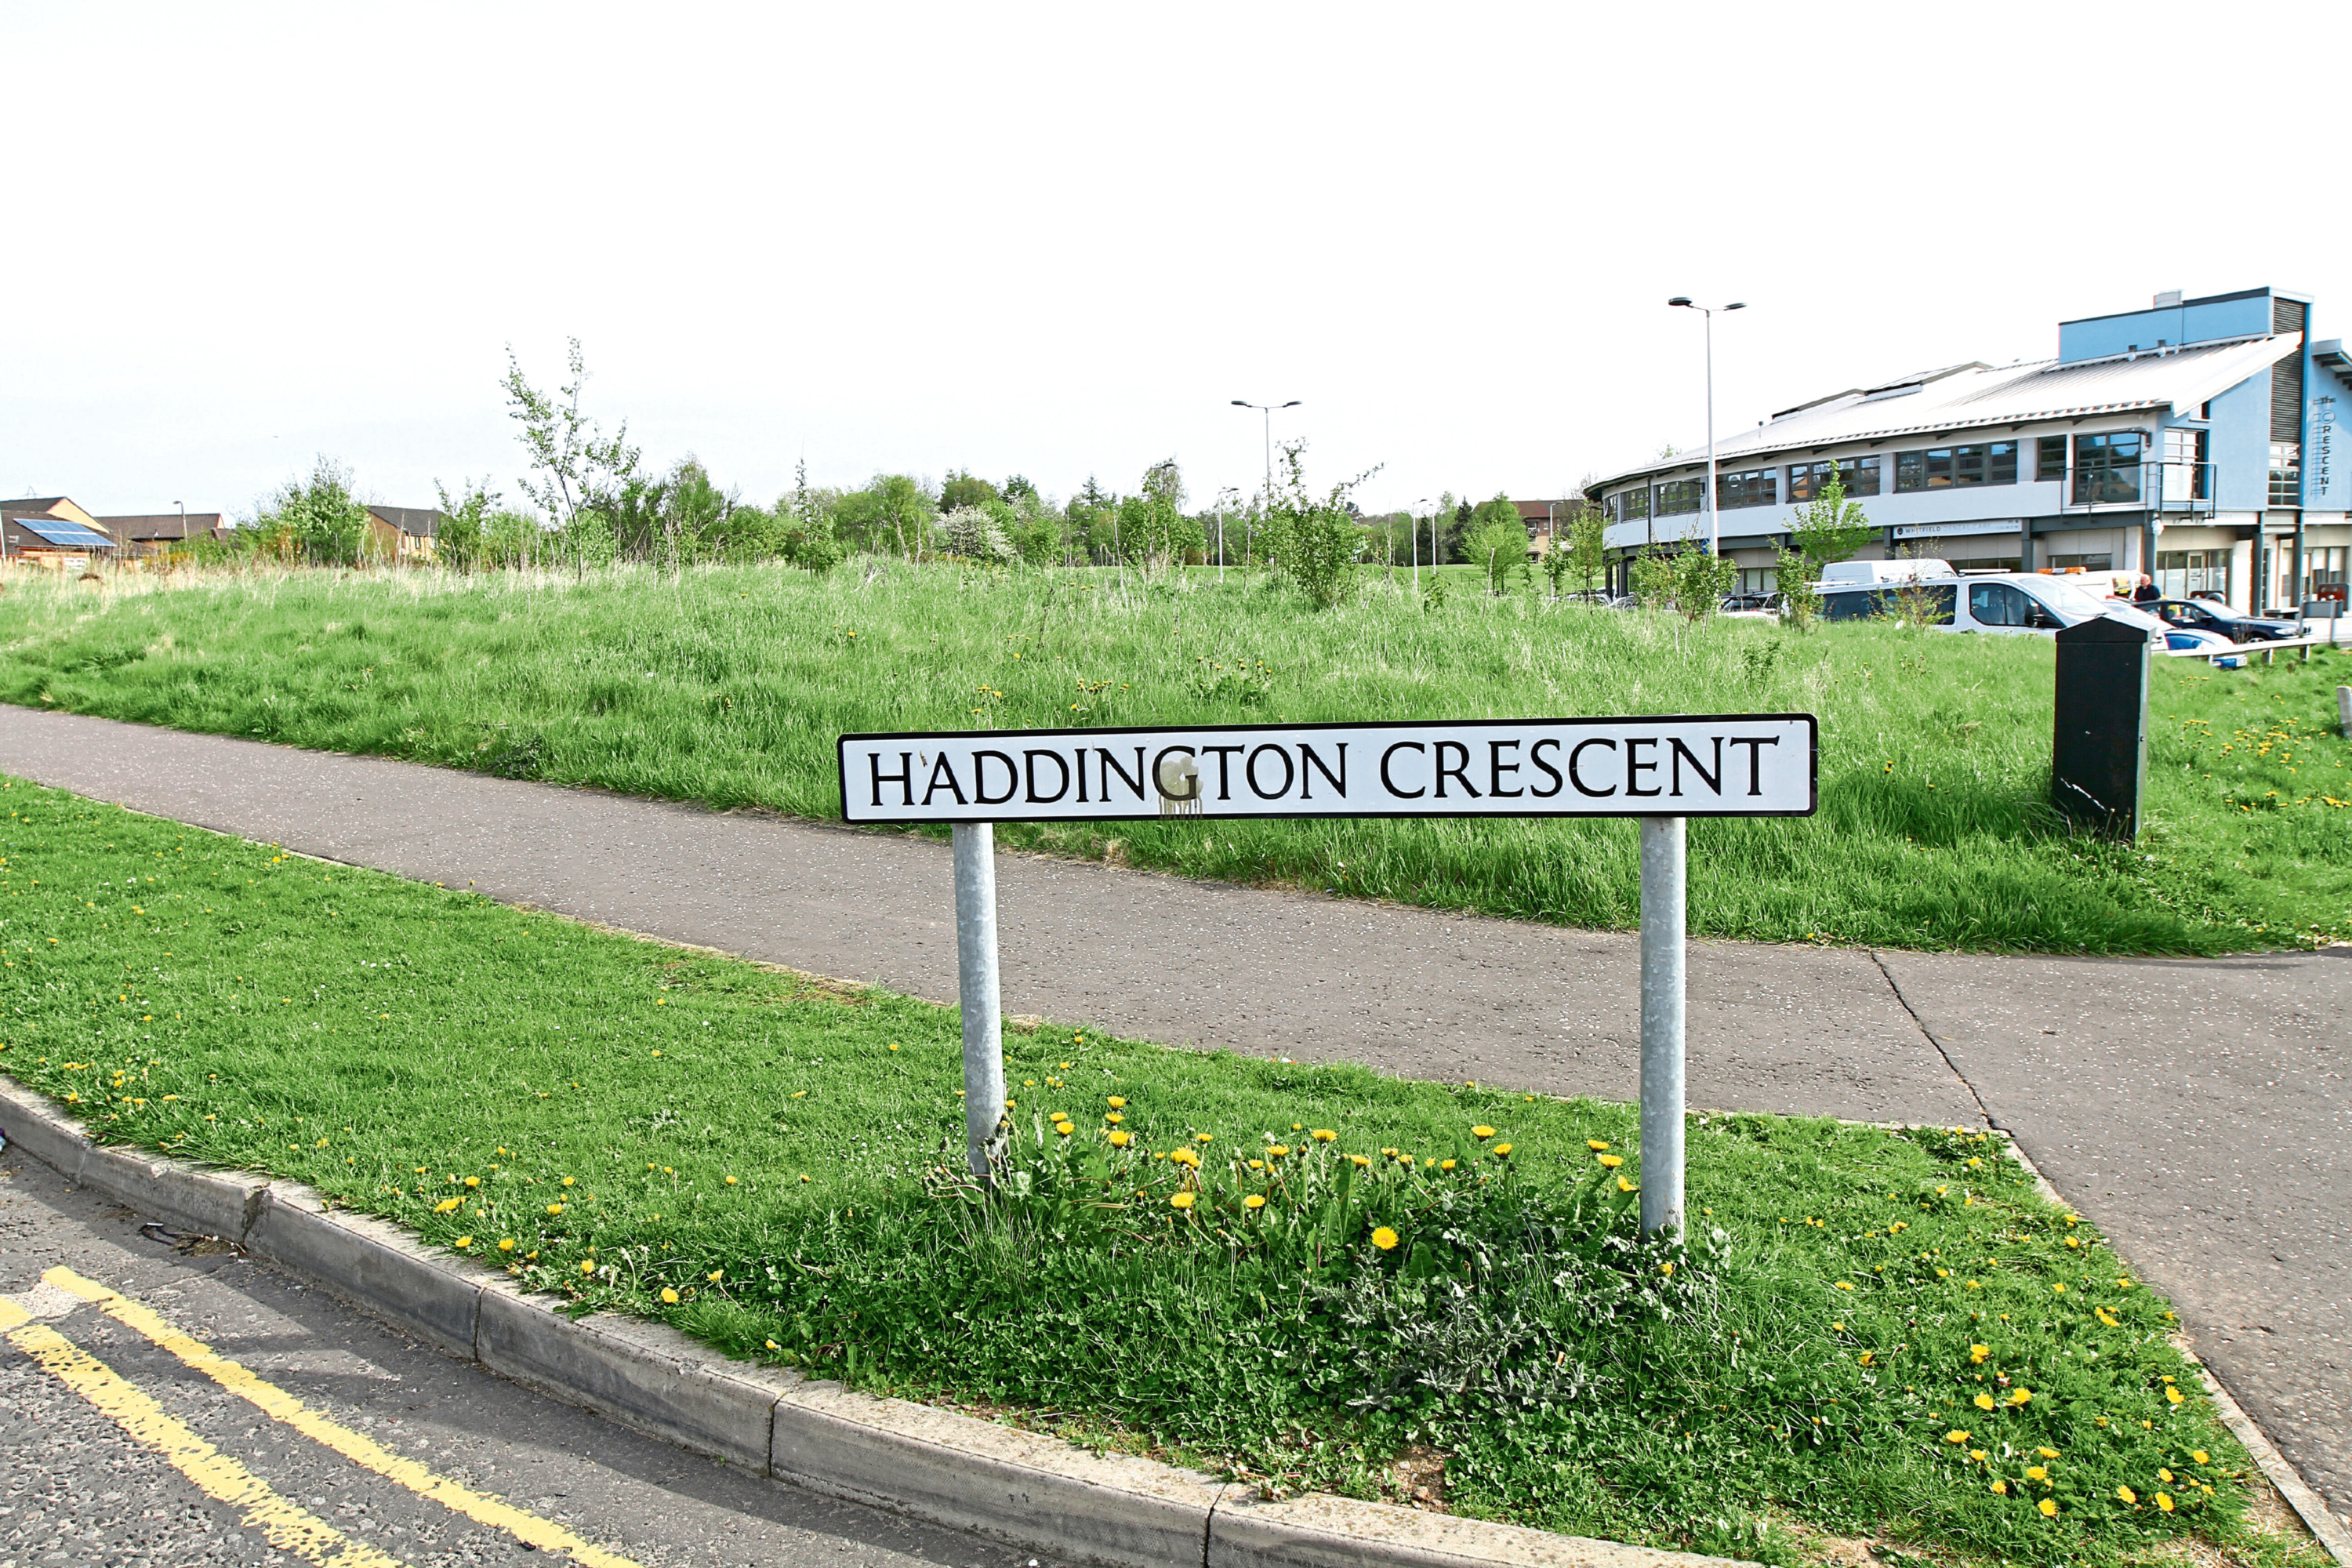 The grassy area off Haddington Crescent is the proposed site for the homes.